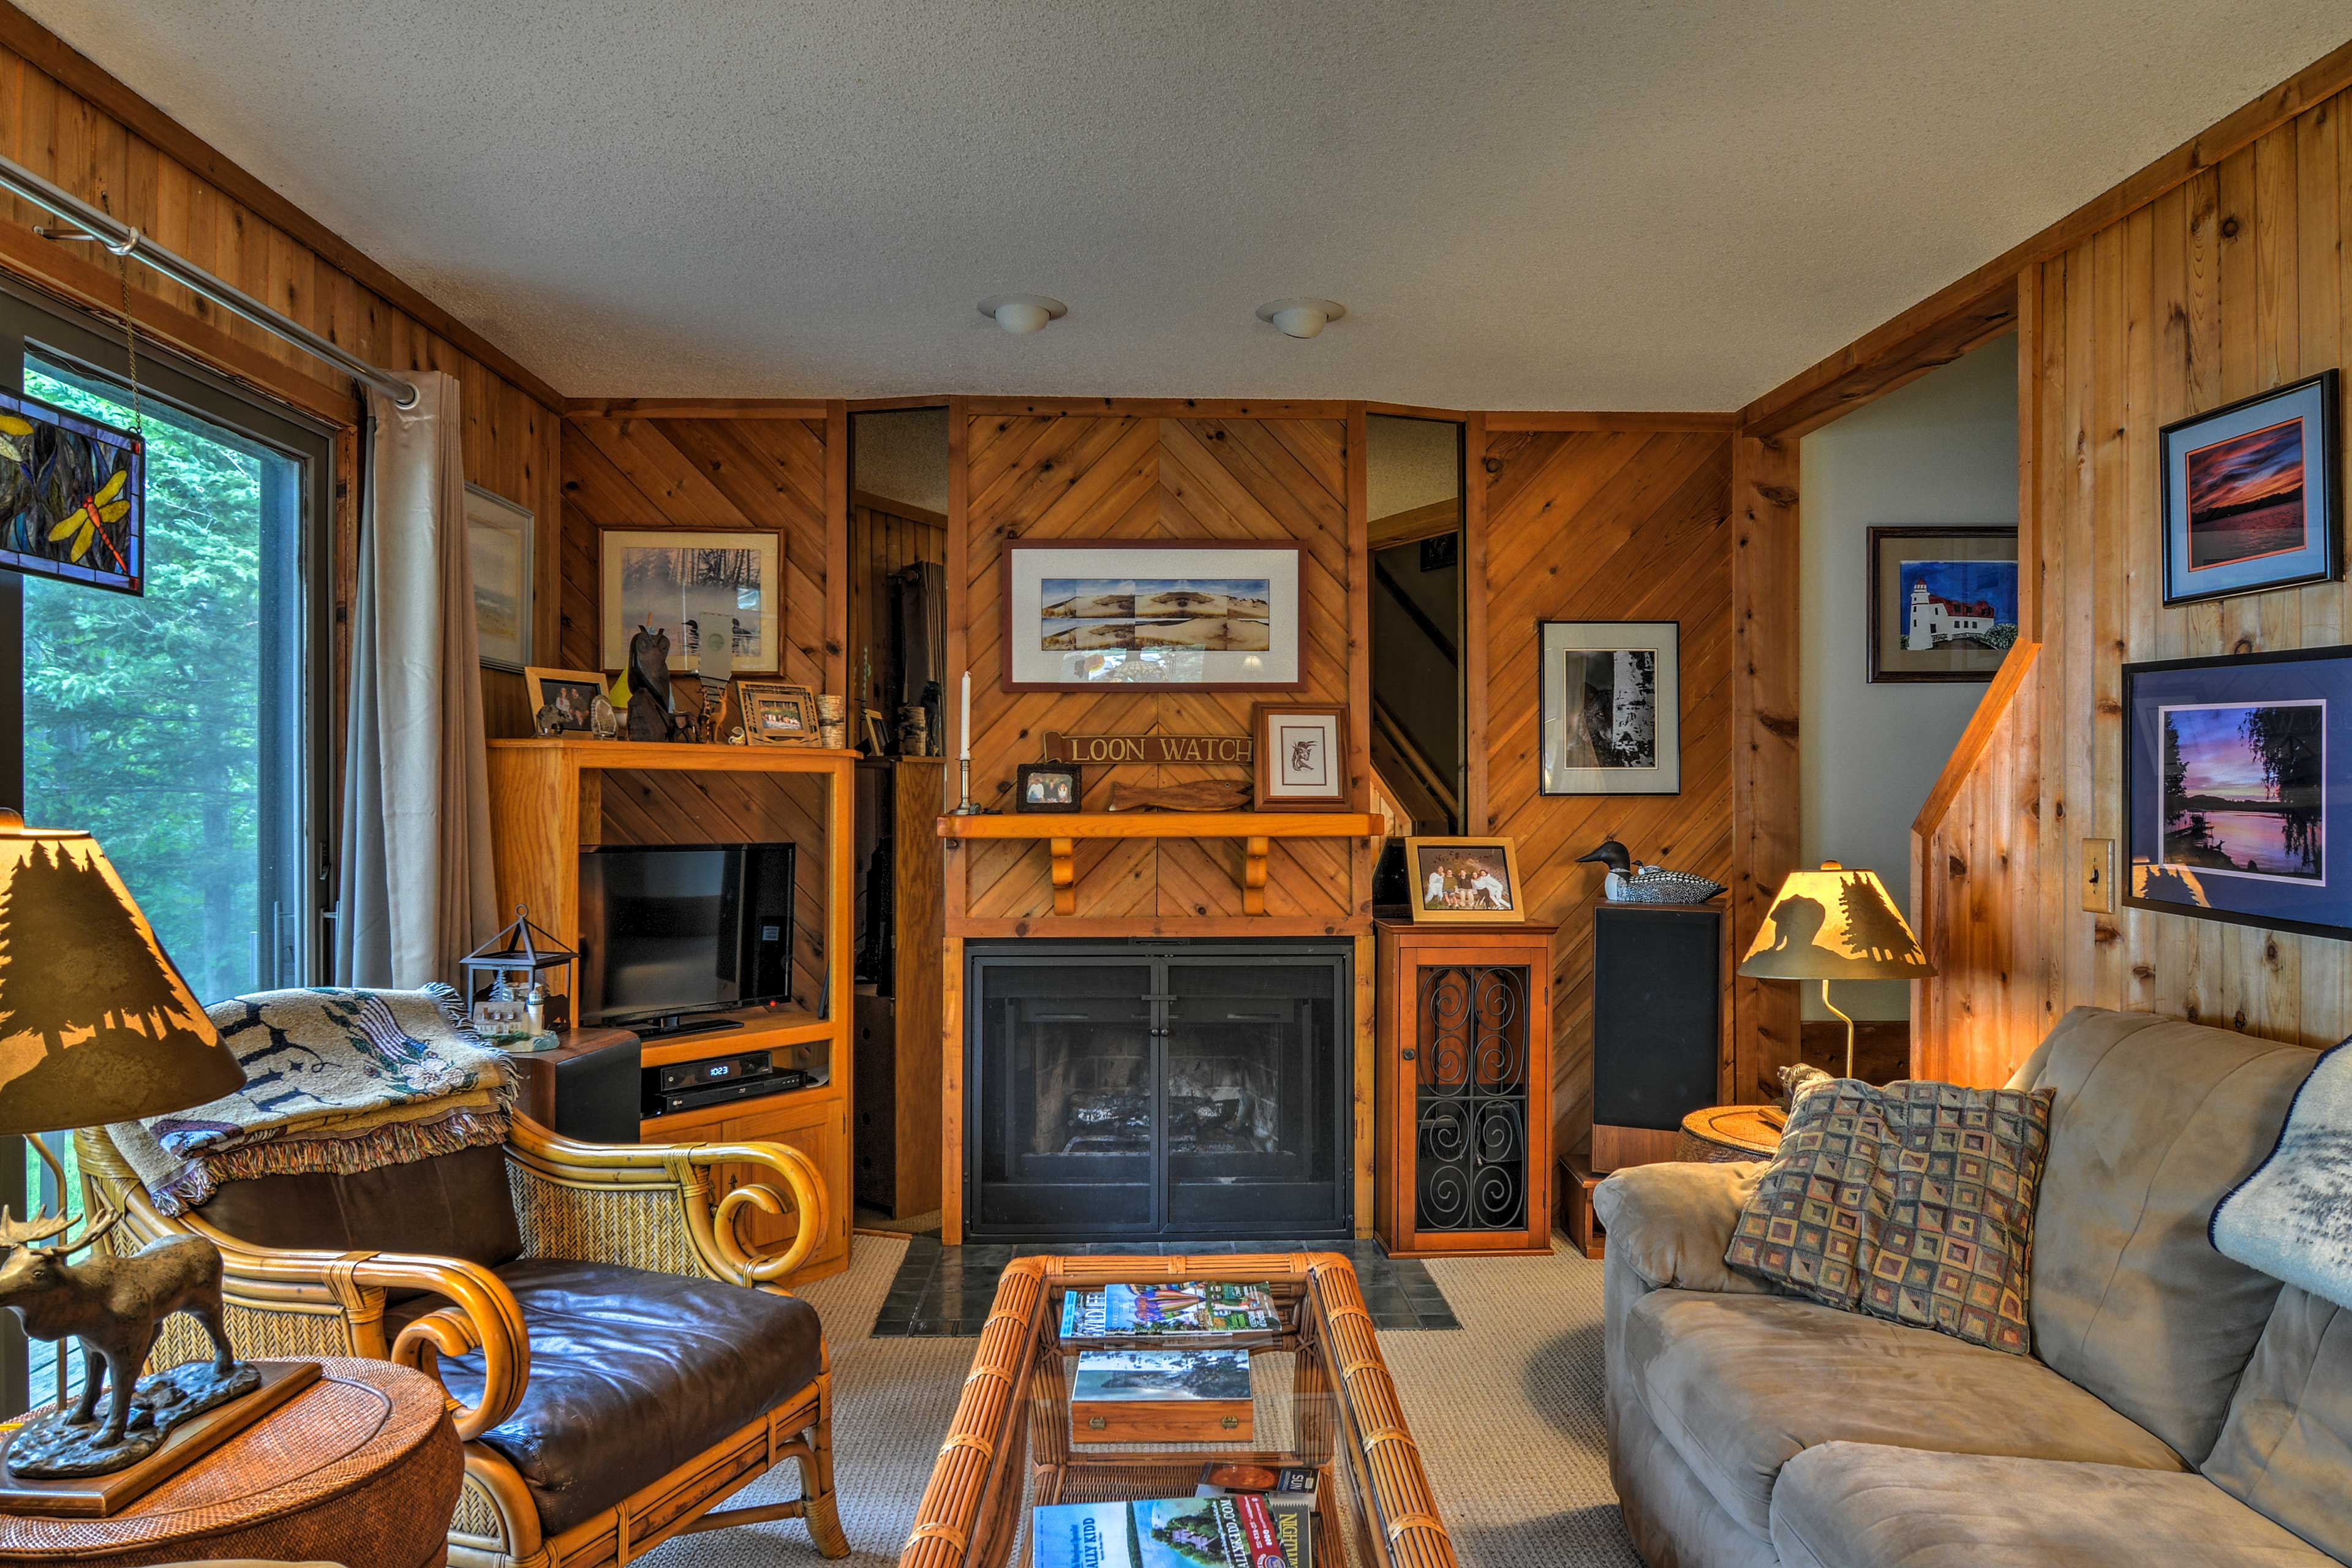 This 3-bedroom, 2-bathroom vacation rental is perfect for a relaxing retreat!